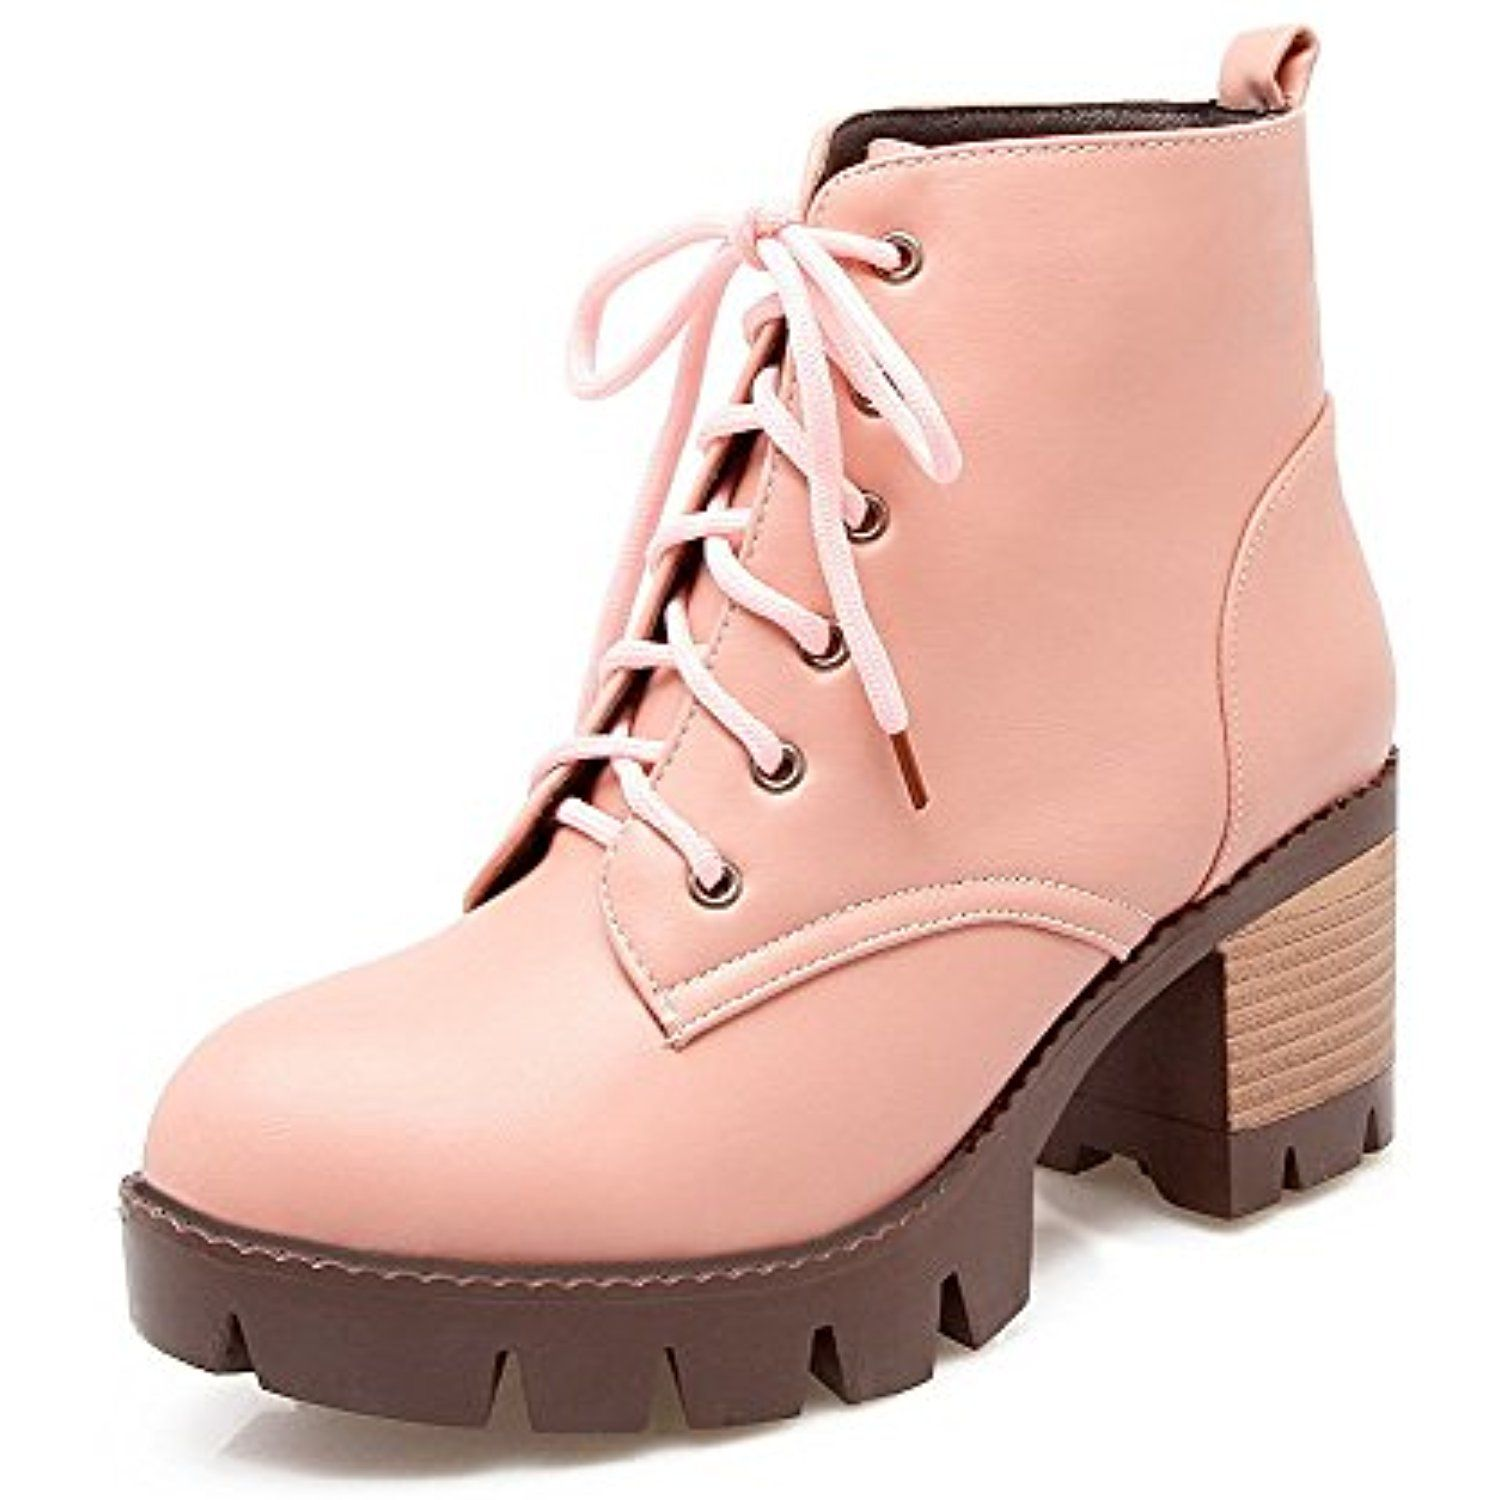 Women's Round Closed Toe Low Top Kitten Heels Solid PU Boots With Lace